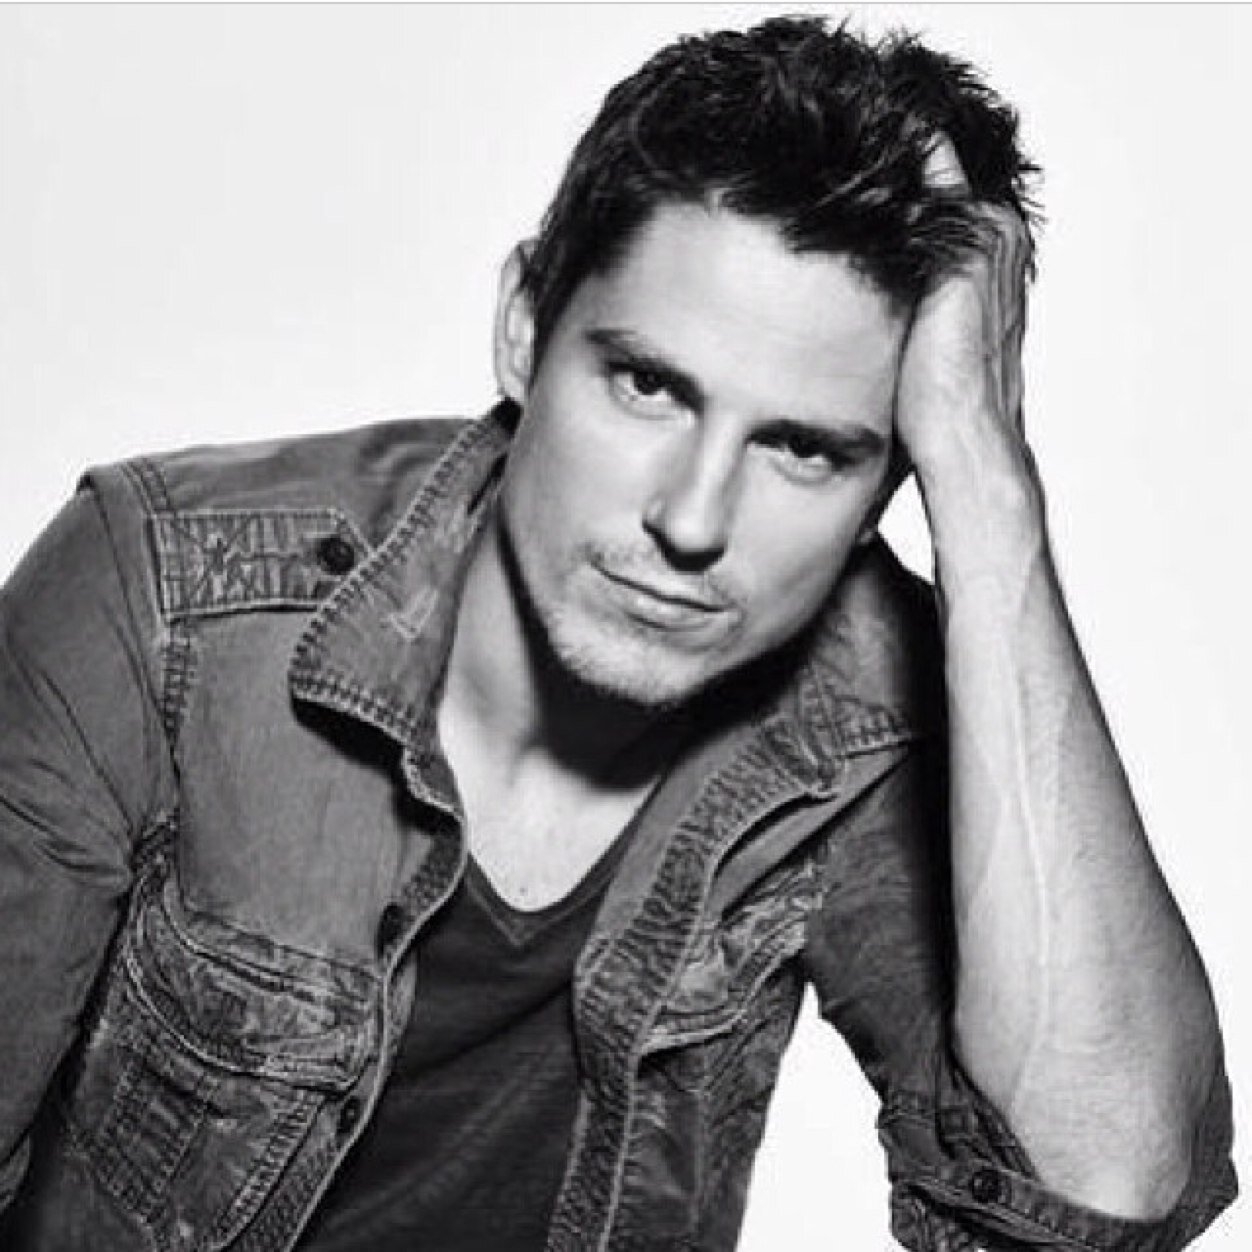 actor sean faris pictures images album pictures photos download